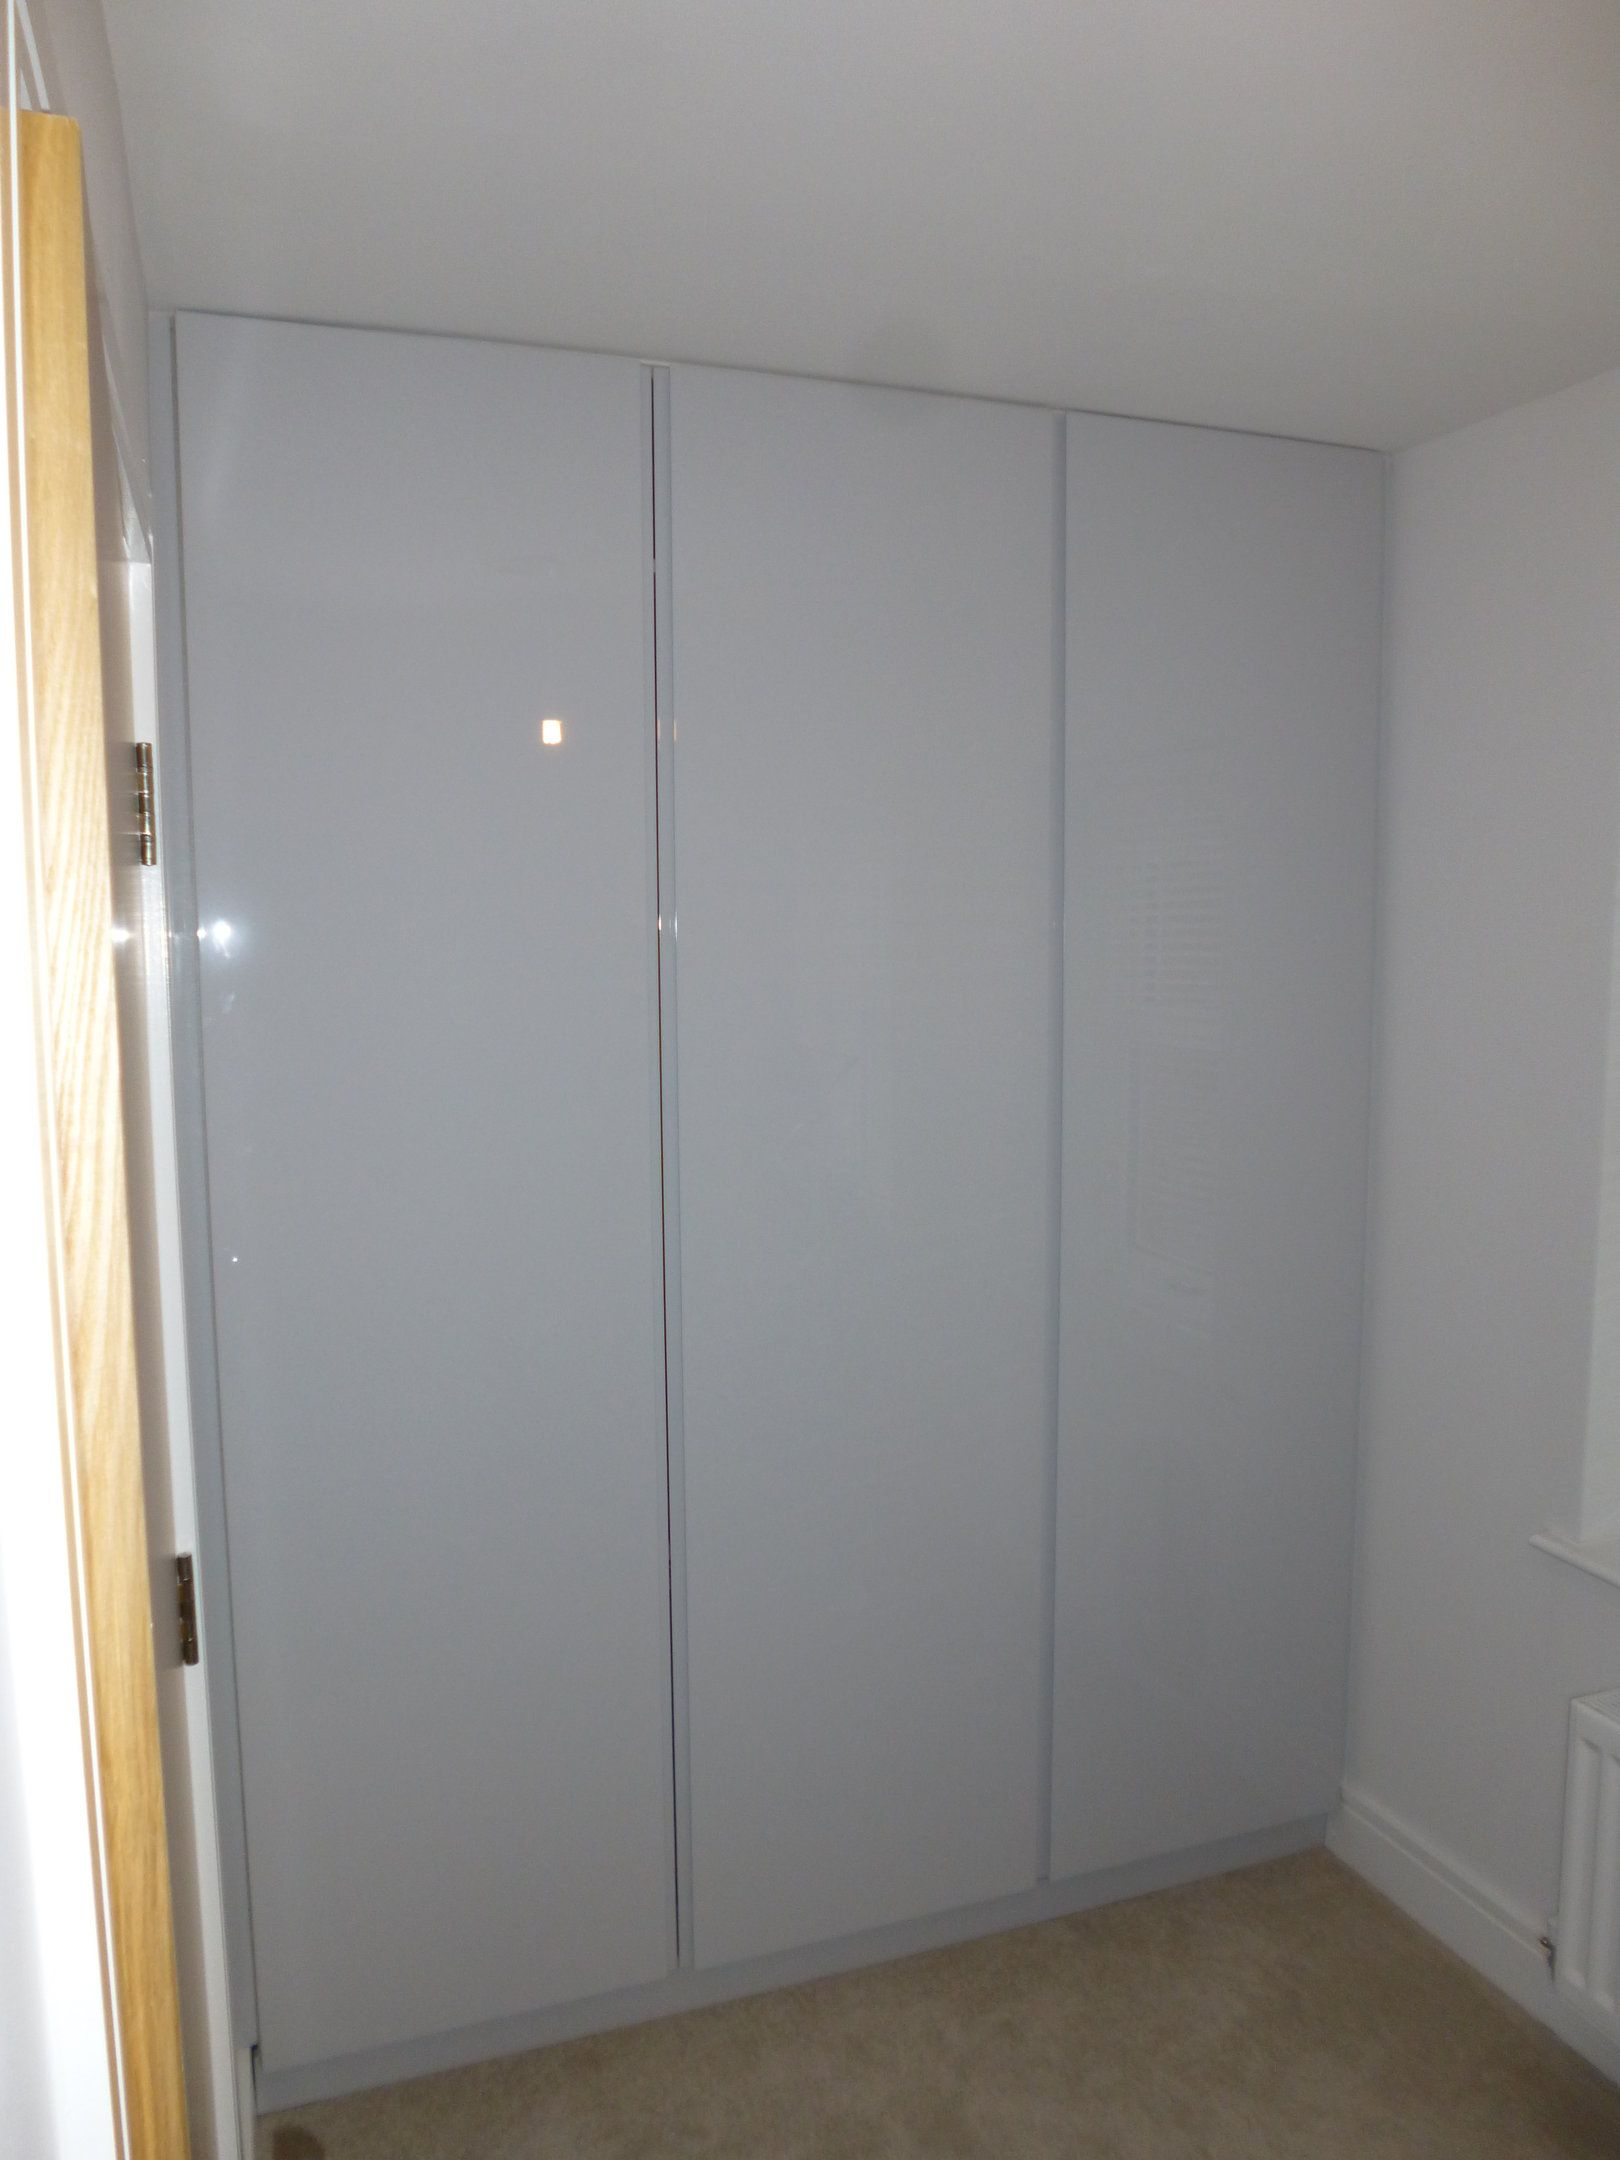 Hinged-door wardrobes pine painted white handle less hinged doors wardrobe made from spray painted high gloss mdf AZXJKXJ